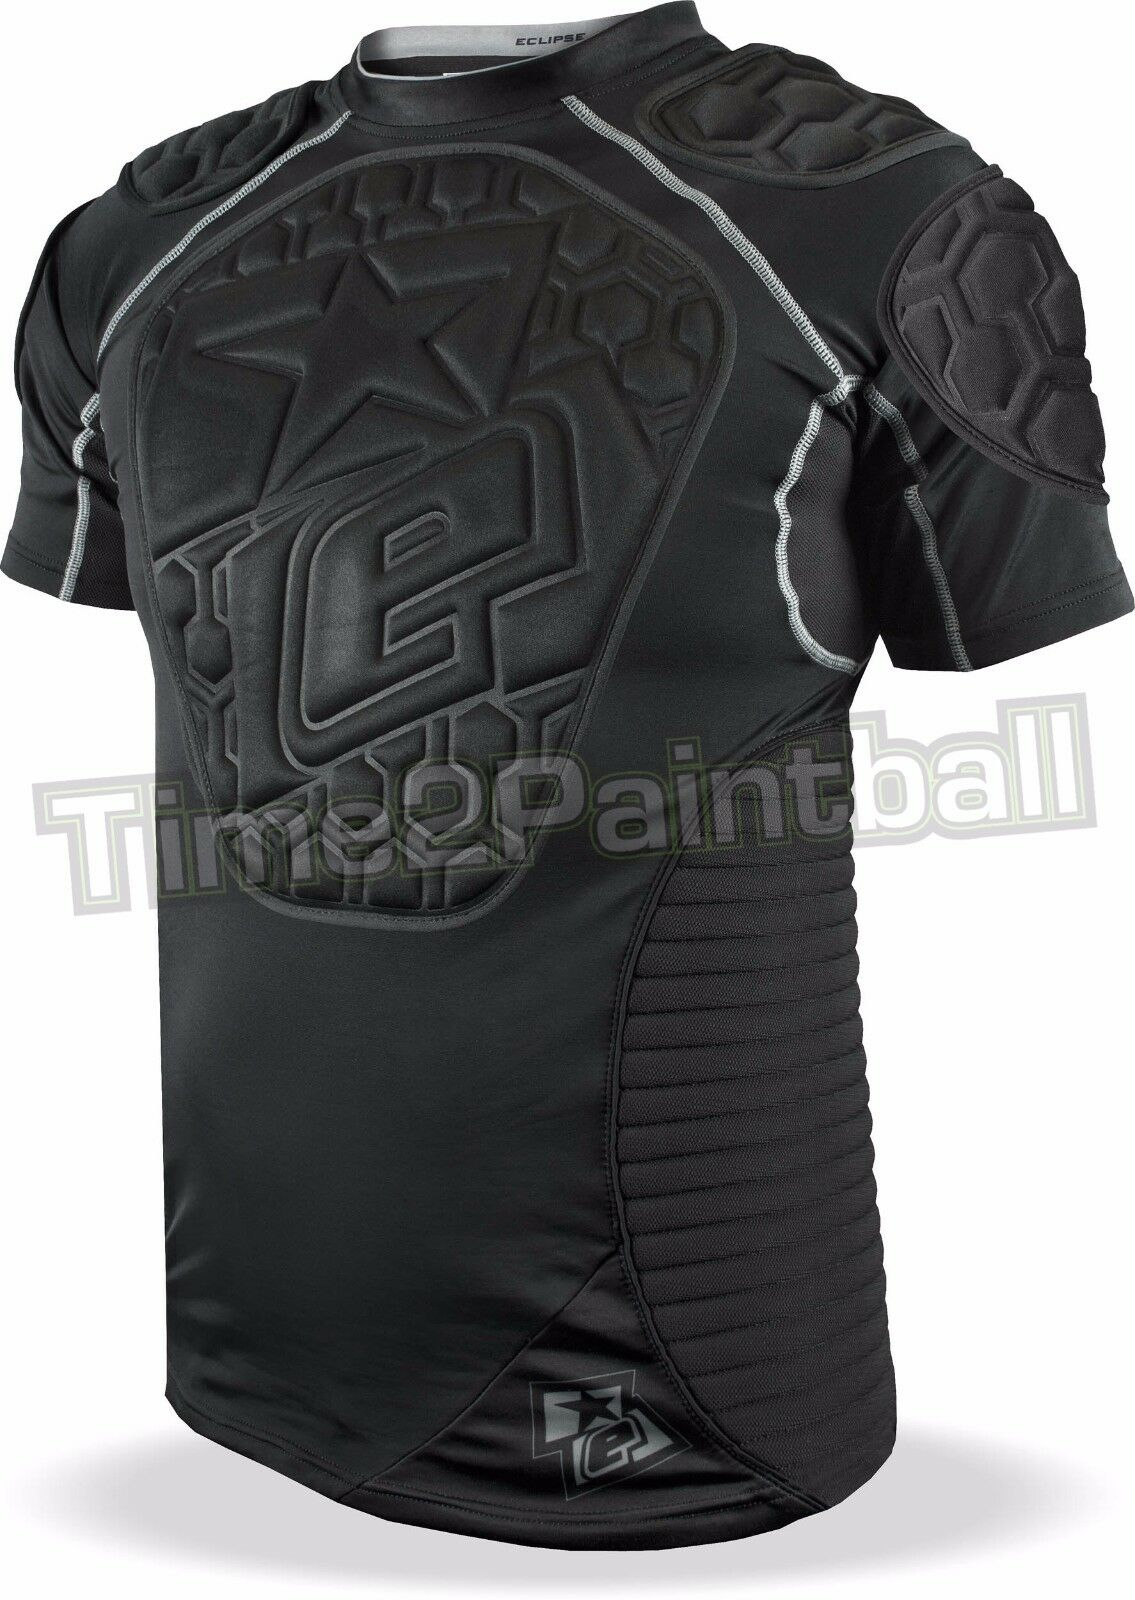 Planet Eclipse Overload Gen2 Chest Prossoector Jersey  gree gratuito SHIPPING